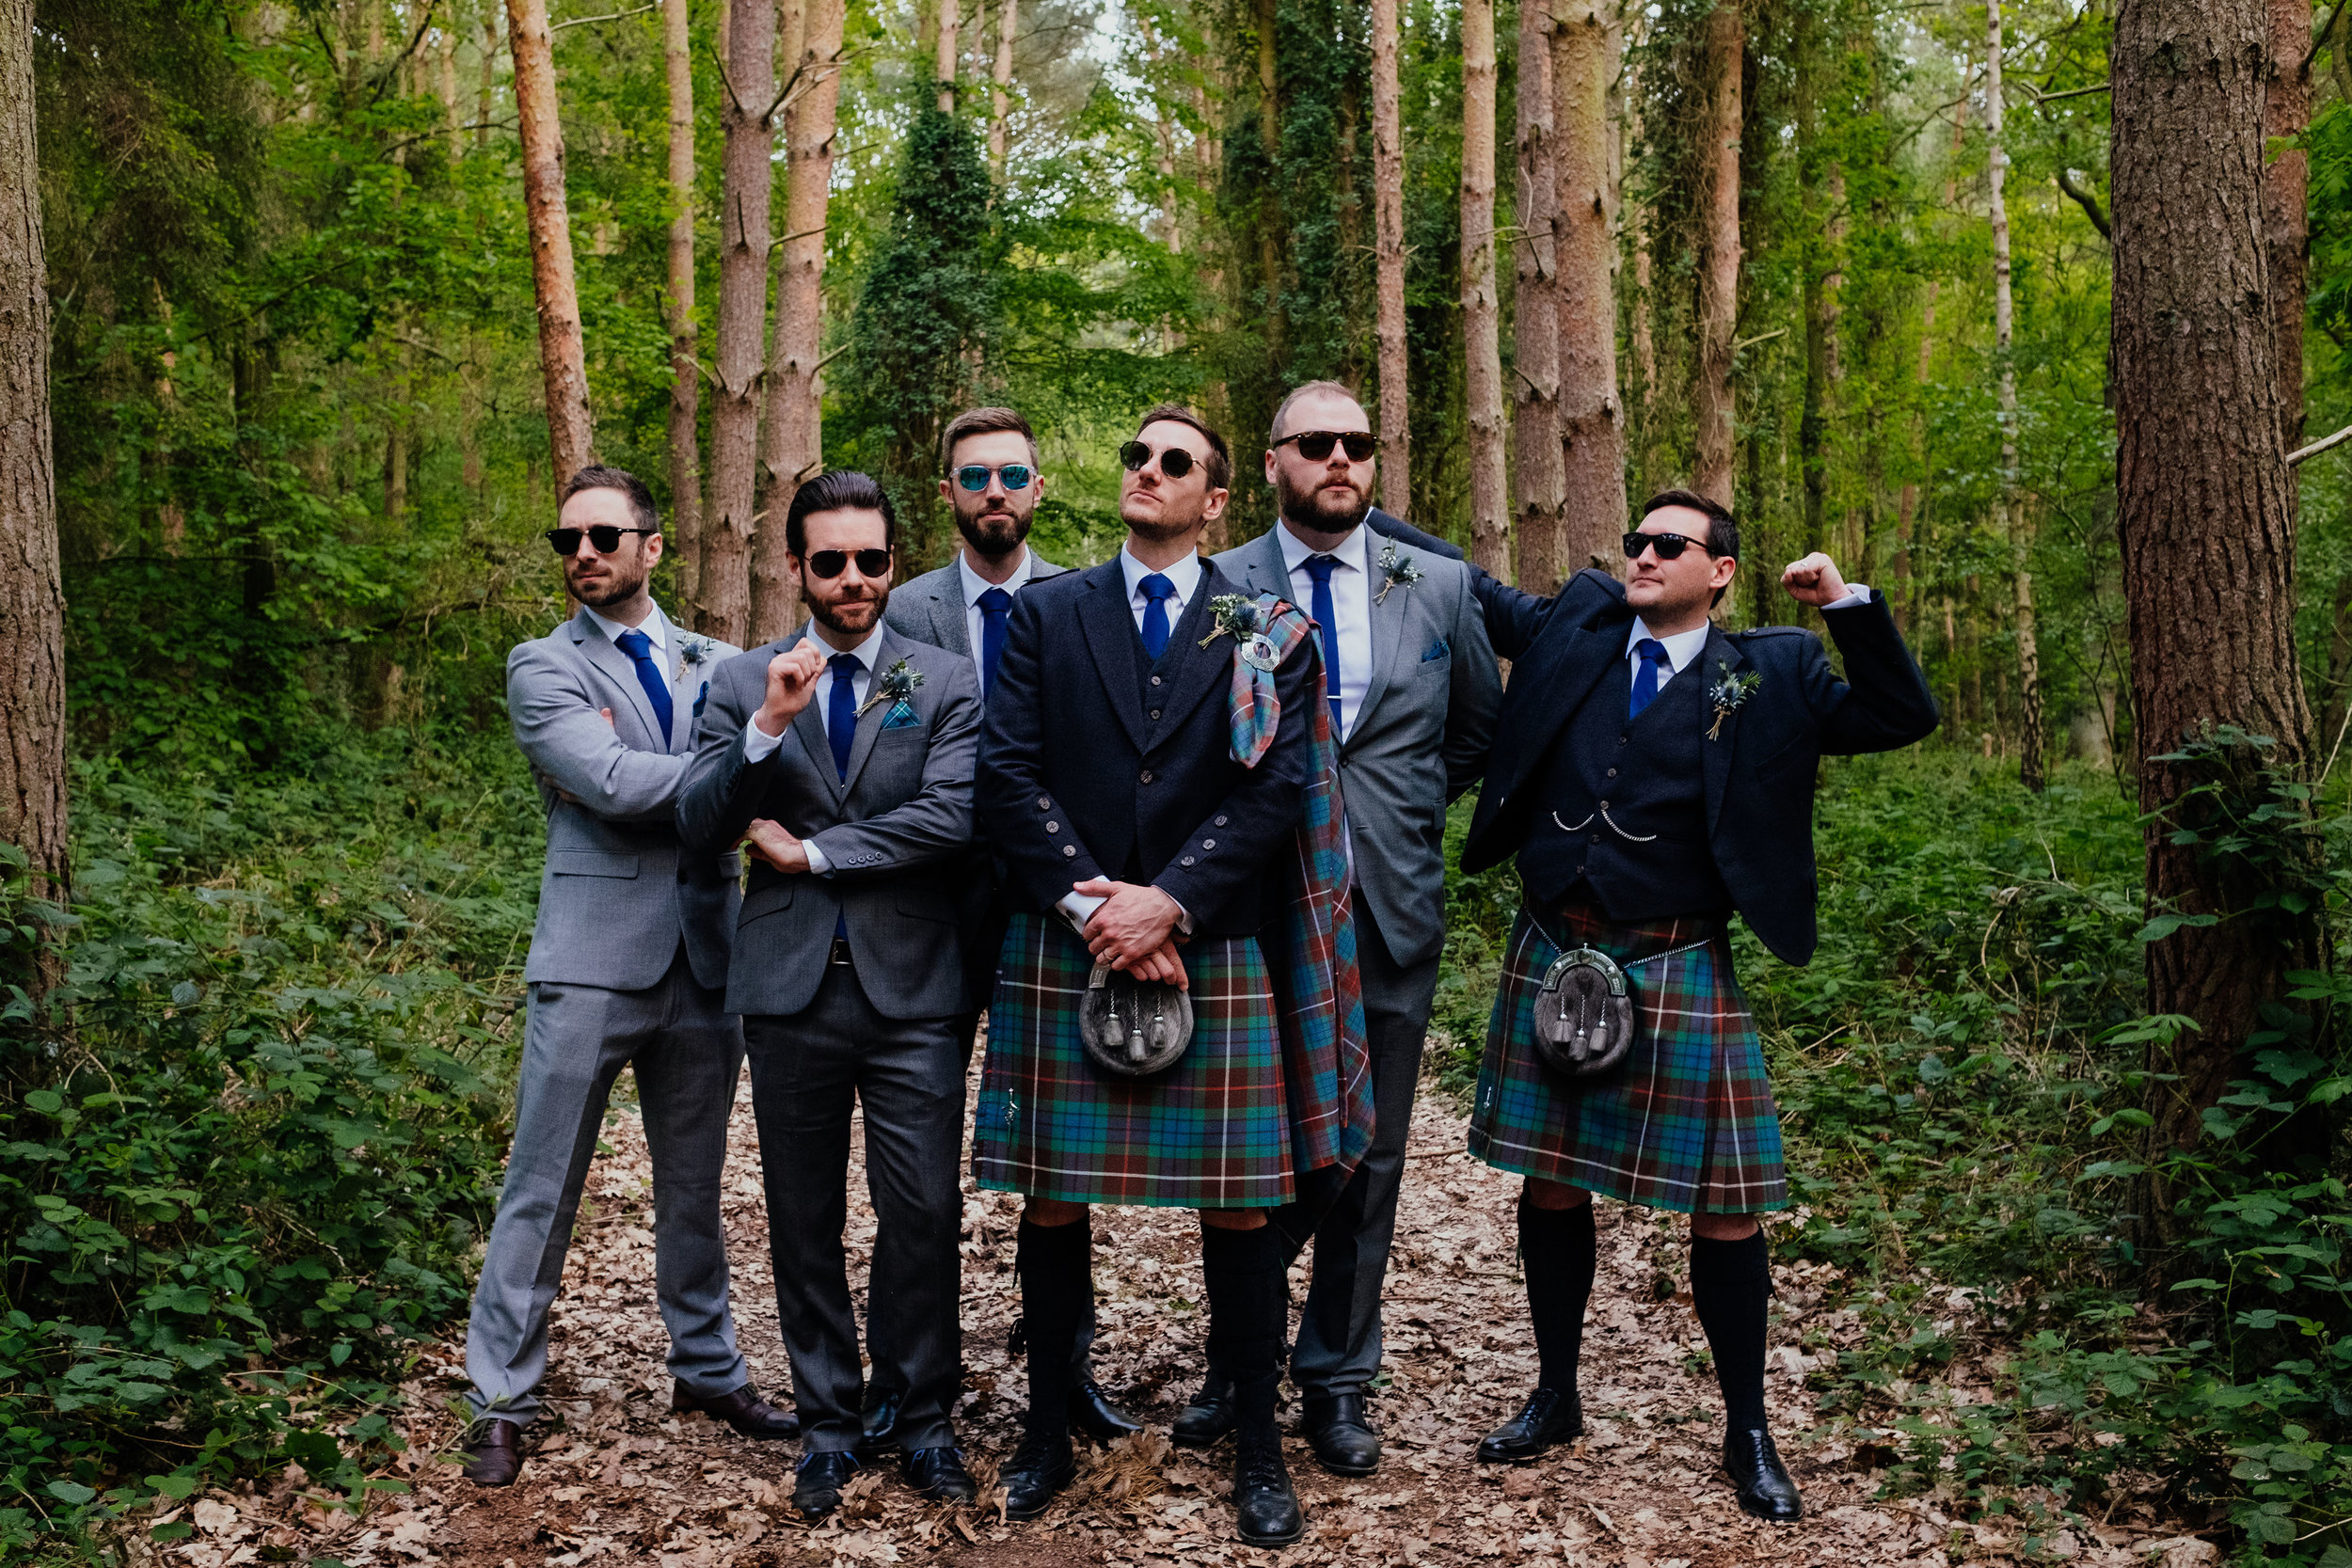 Groom and Groomsmen wearing sunglasses at Captains Wood Barn wedding